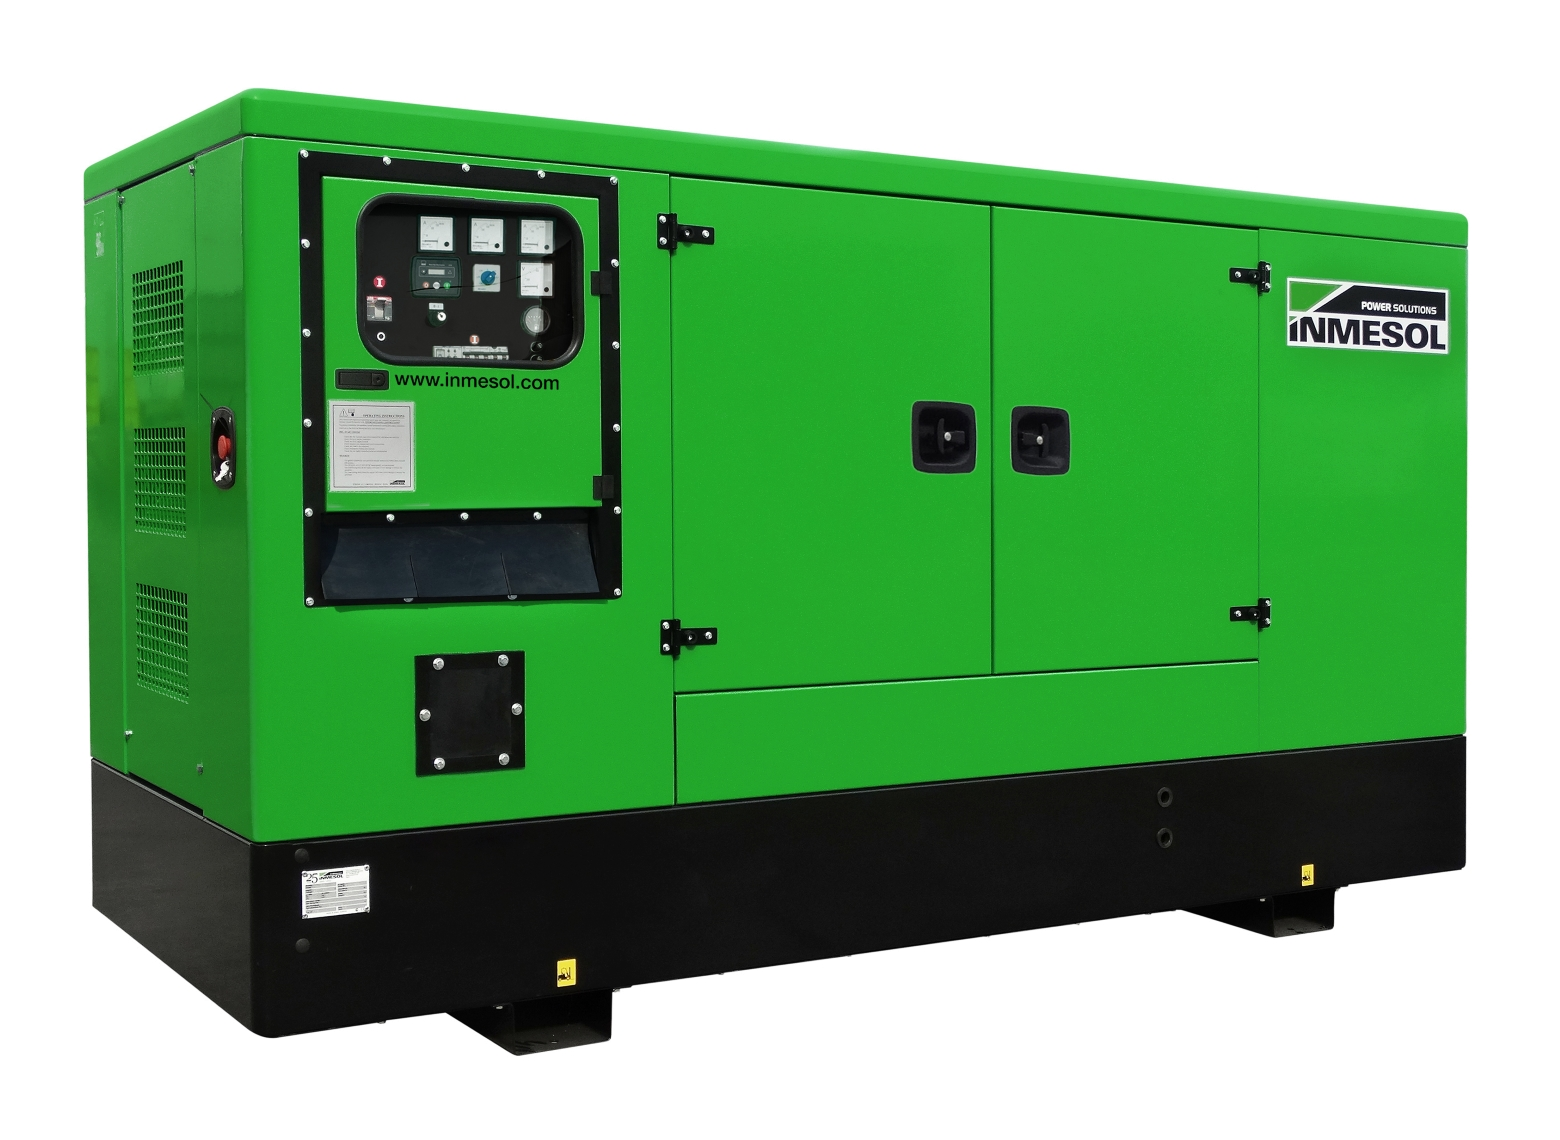 Generator with manual control panel.ID-110 - DEUTZ - BF4M1013ECG2 - 1.500 R.P.M. | 50 Hz